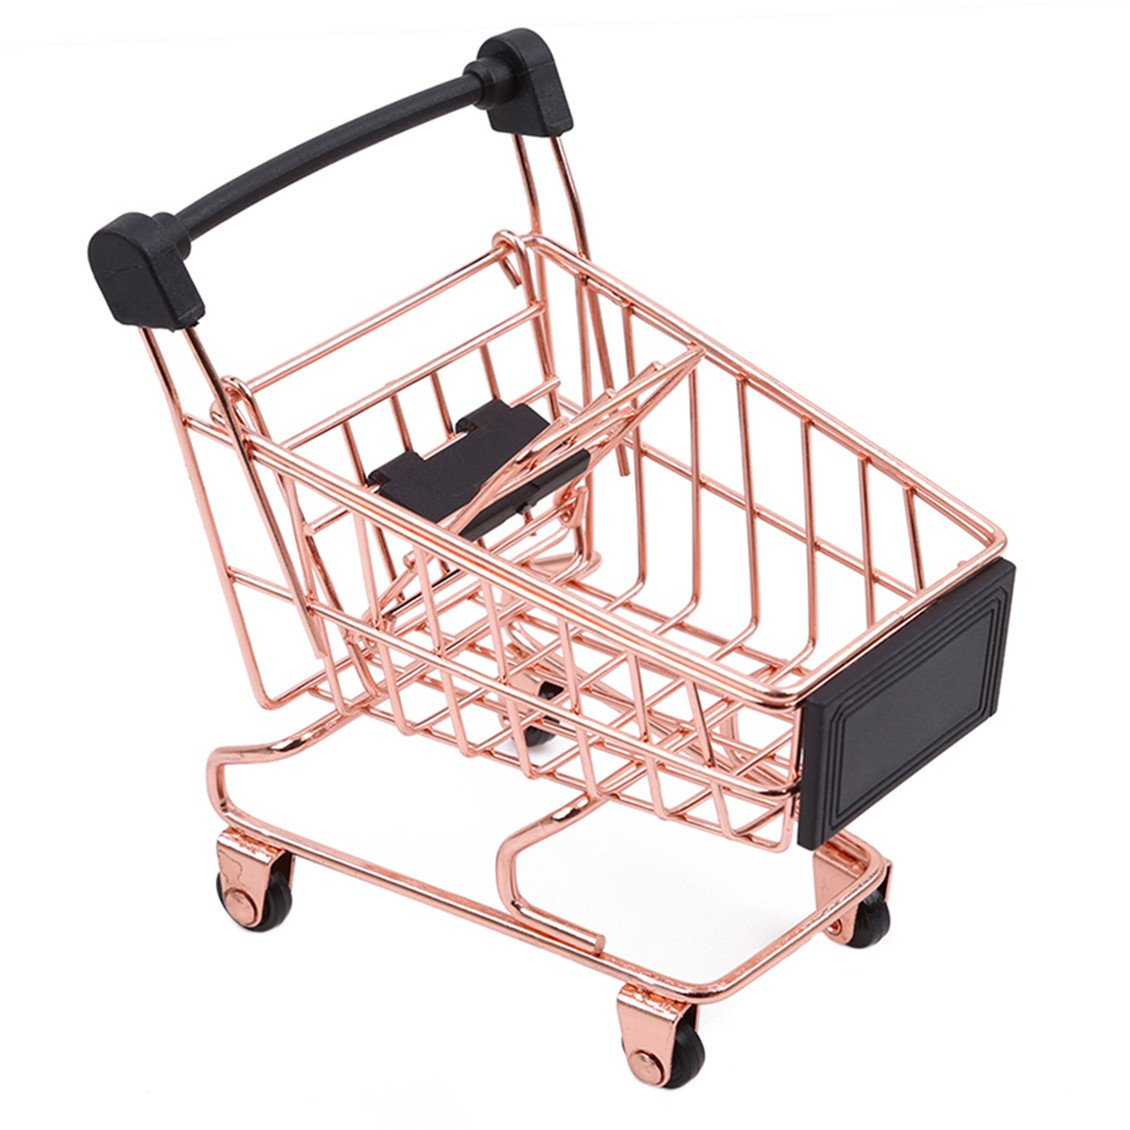 Dolland Mini Shopping Cart Supermarket Handcart Shopping Utility Cart Storage Toy Basket Desk Pen Holder,S-Rose Gold by Dolland (Image #1)